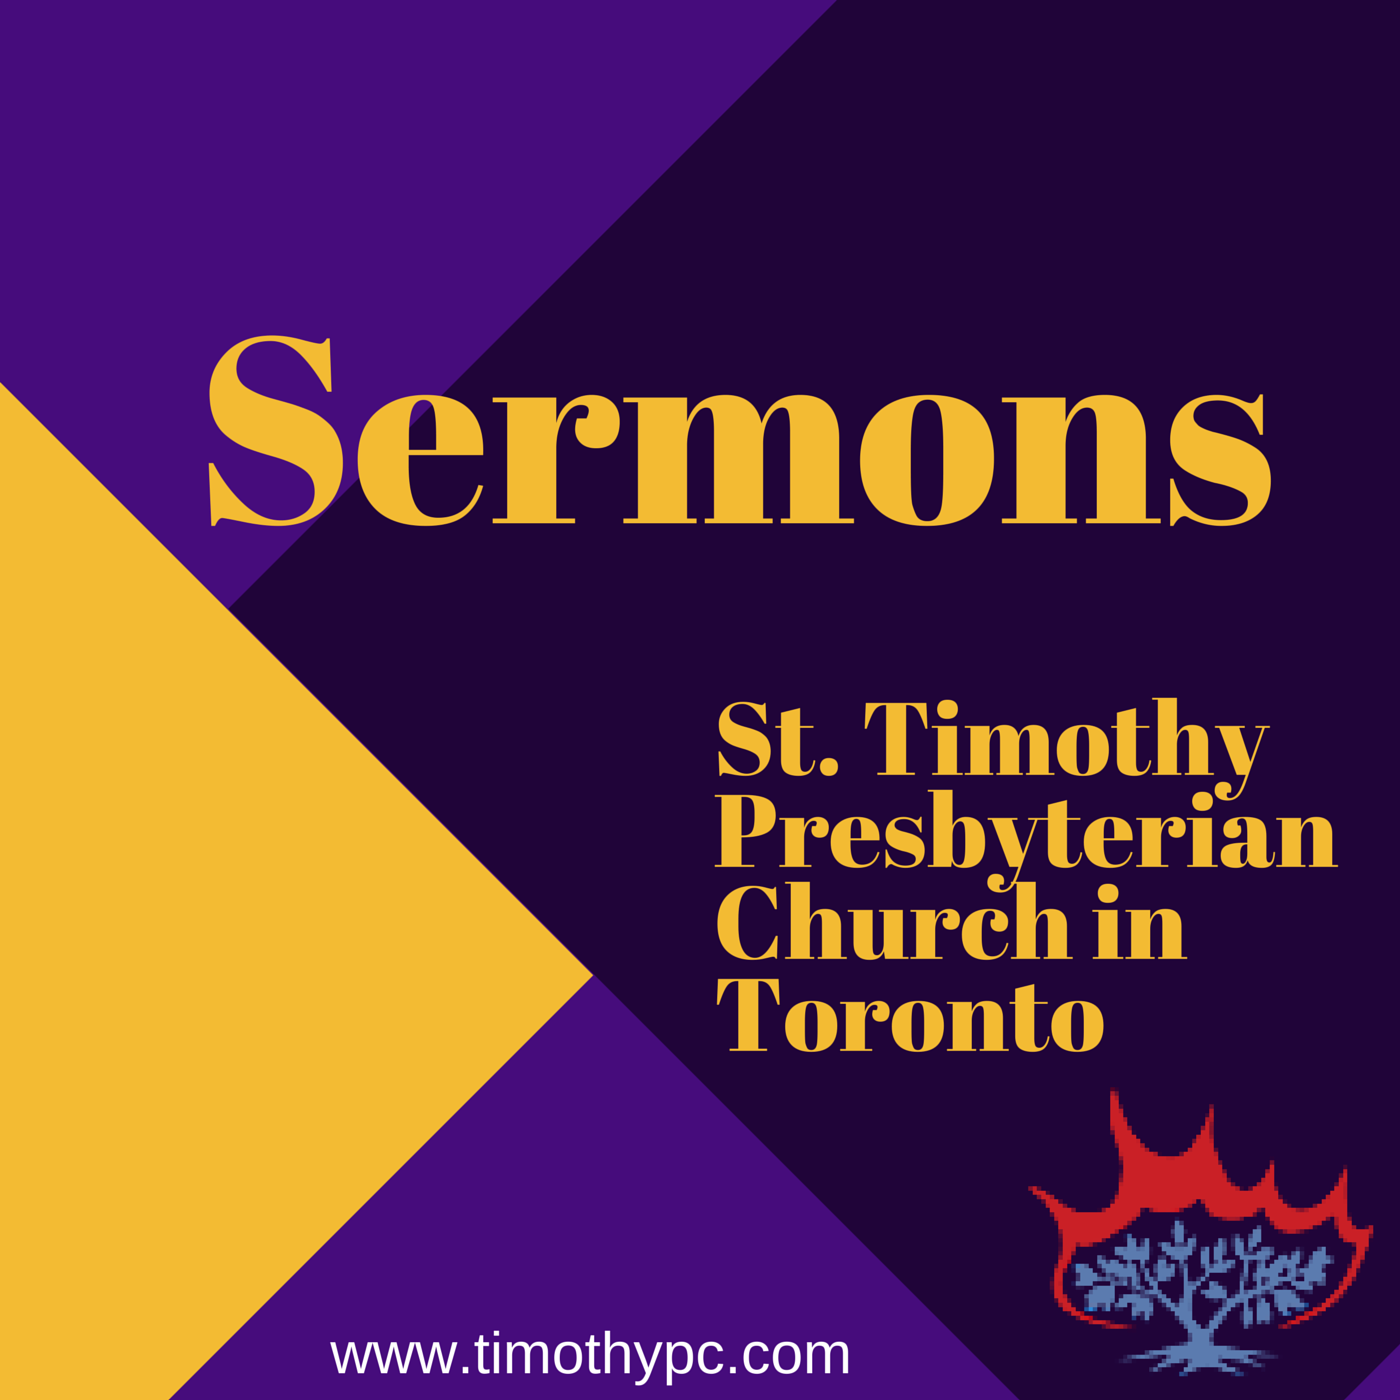 St Timothy Presbyterian Church in Toronto: Sermons